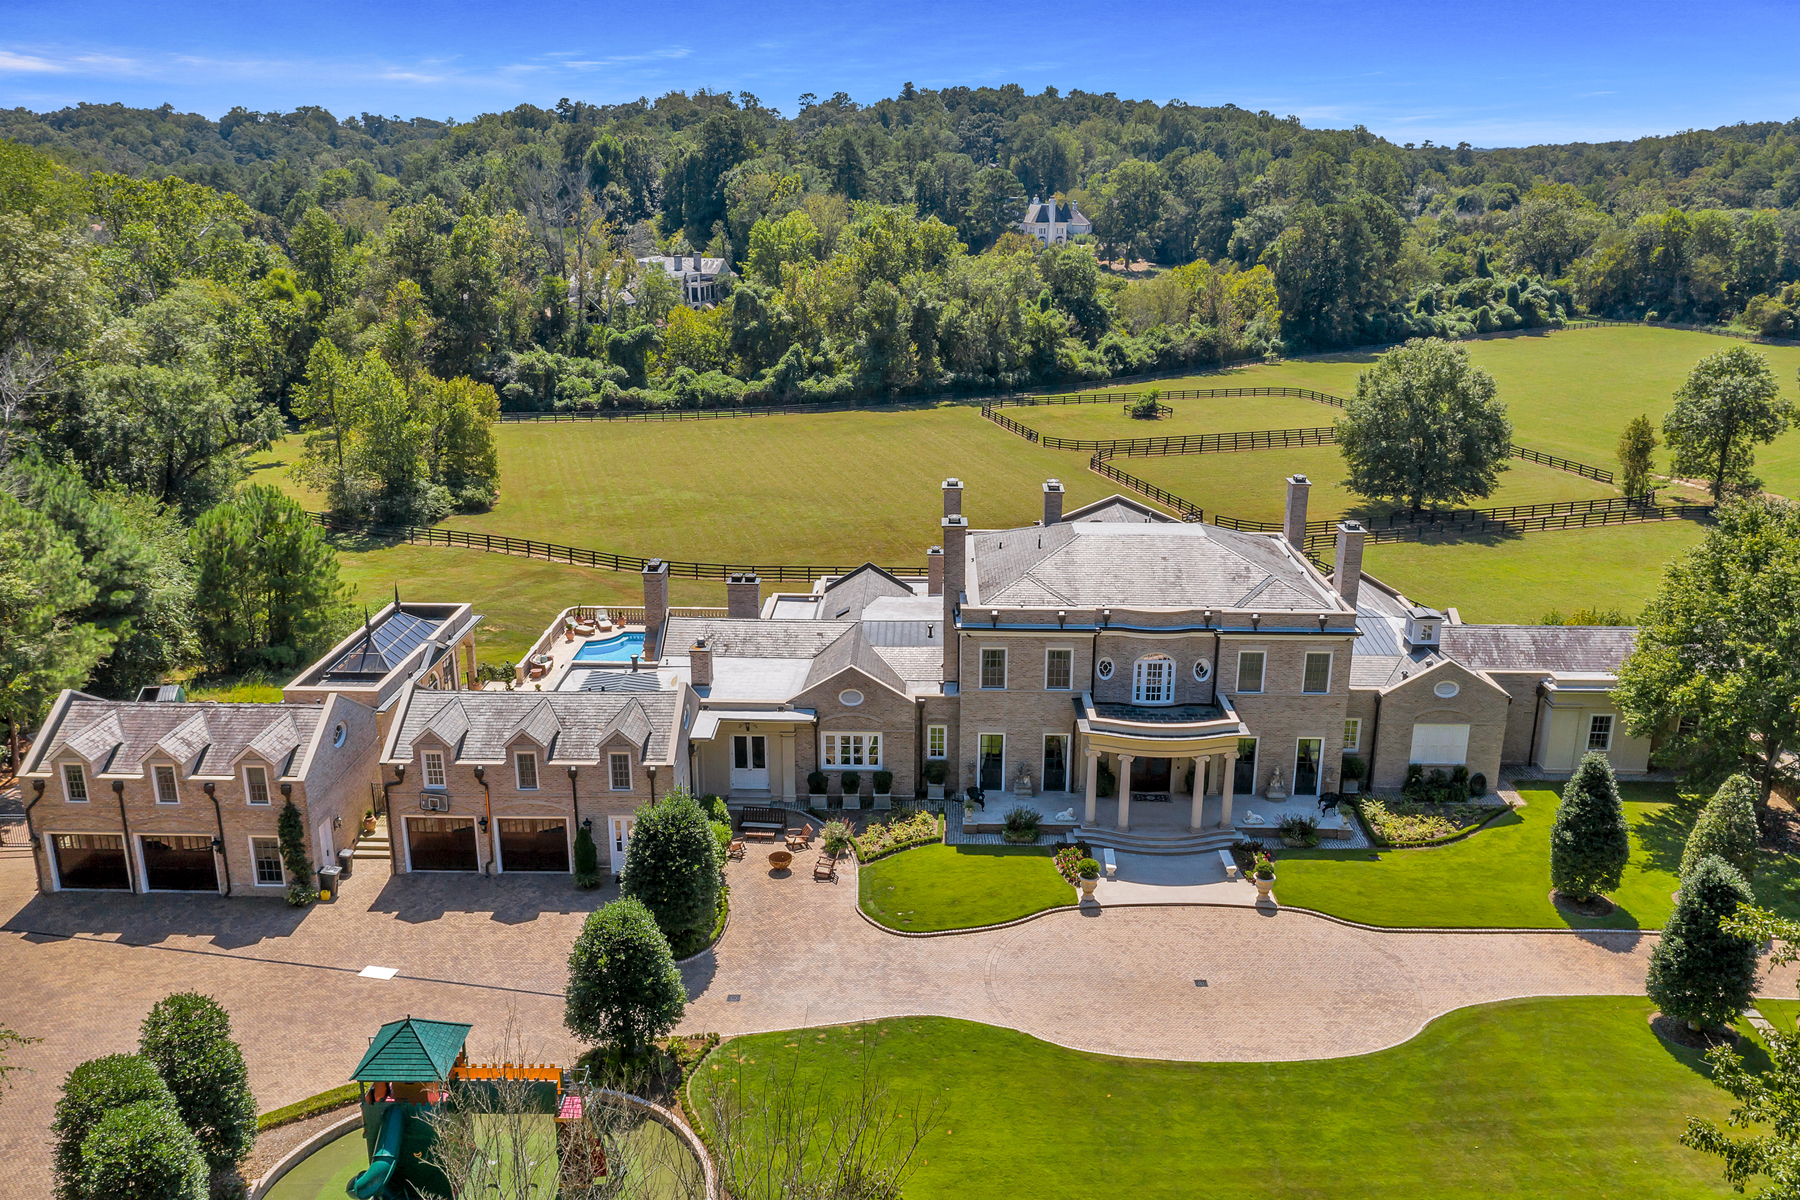 Single Family Homes for Sale at Stunning Gated Estate on 17+ Acres in the Heart of Buckhead 1040 W Conway Drive NW Atlanta, Georgia 30327 United States